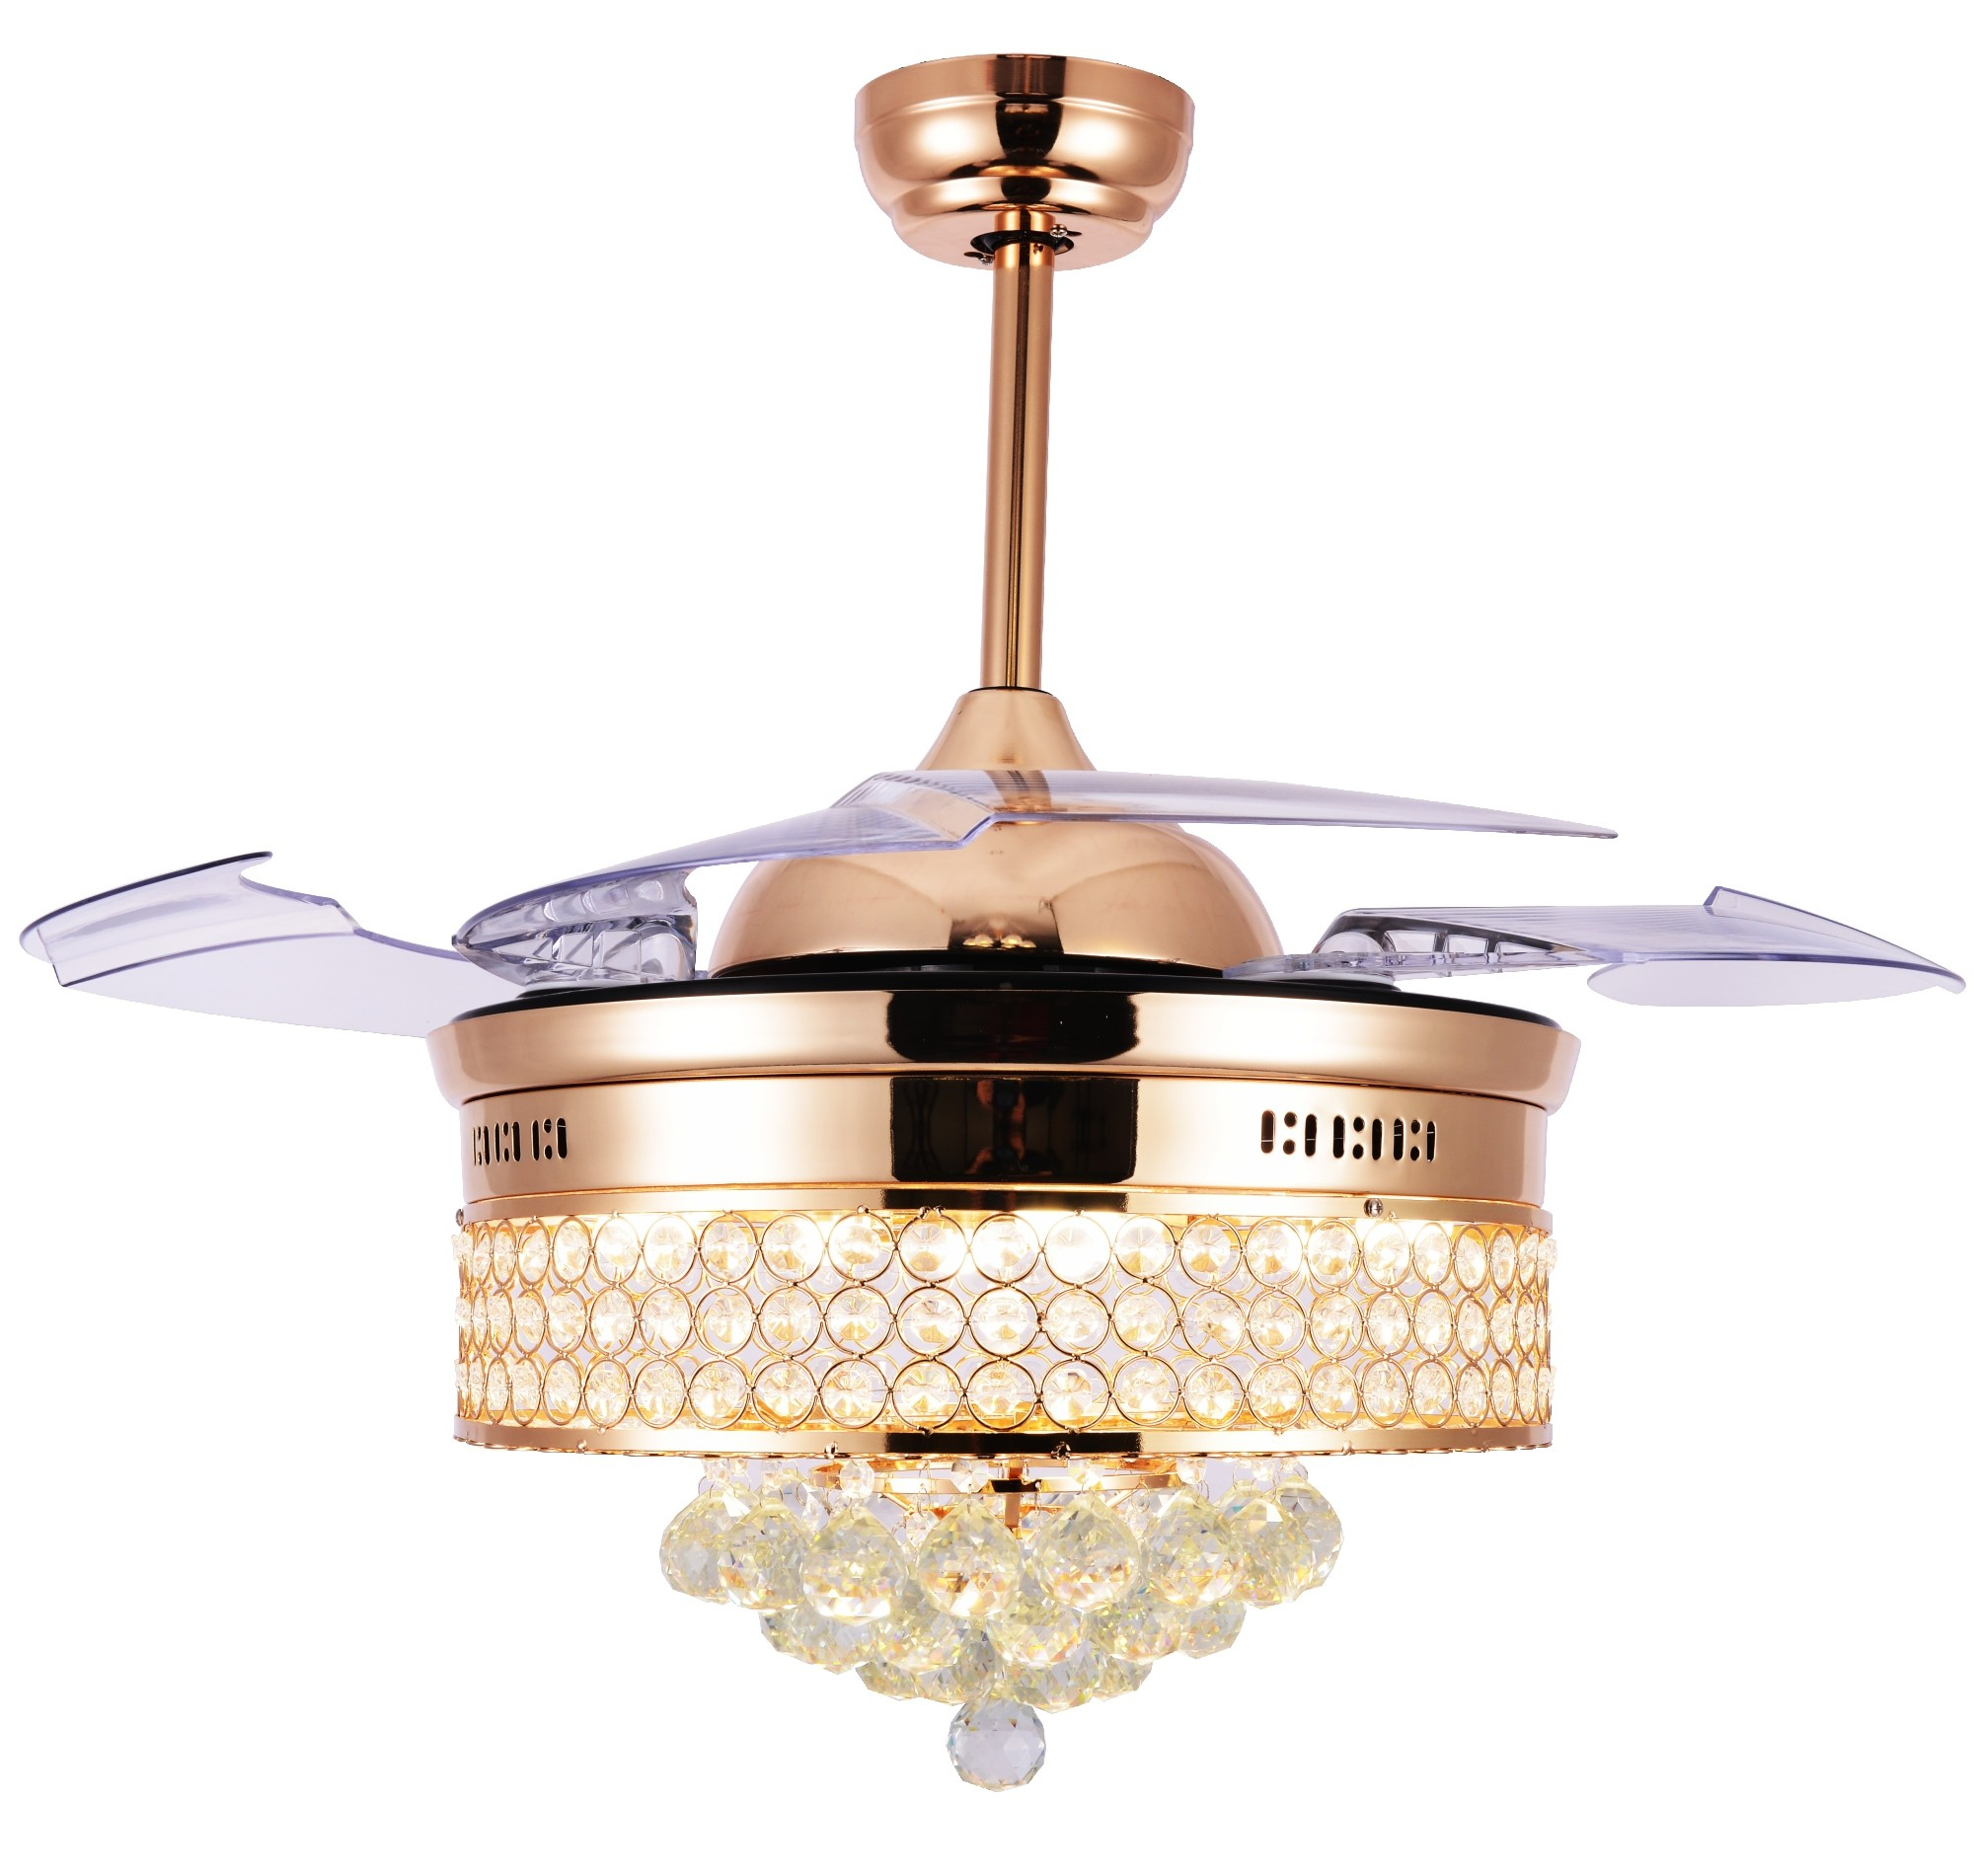 "42"" Crystal Chandelier Ceiling Fan With Remote And Lights With Regard To Most Up To Date Caged Crystal 5 Blade Ceiling Fans (View 10 of 20)"